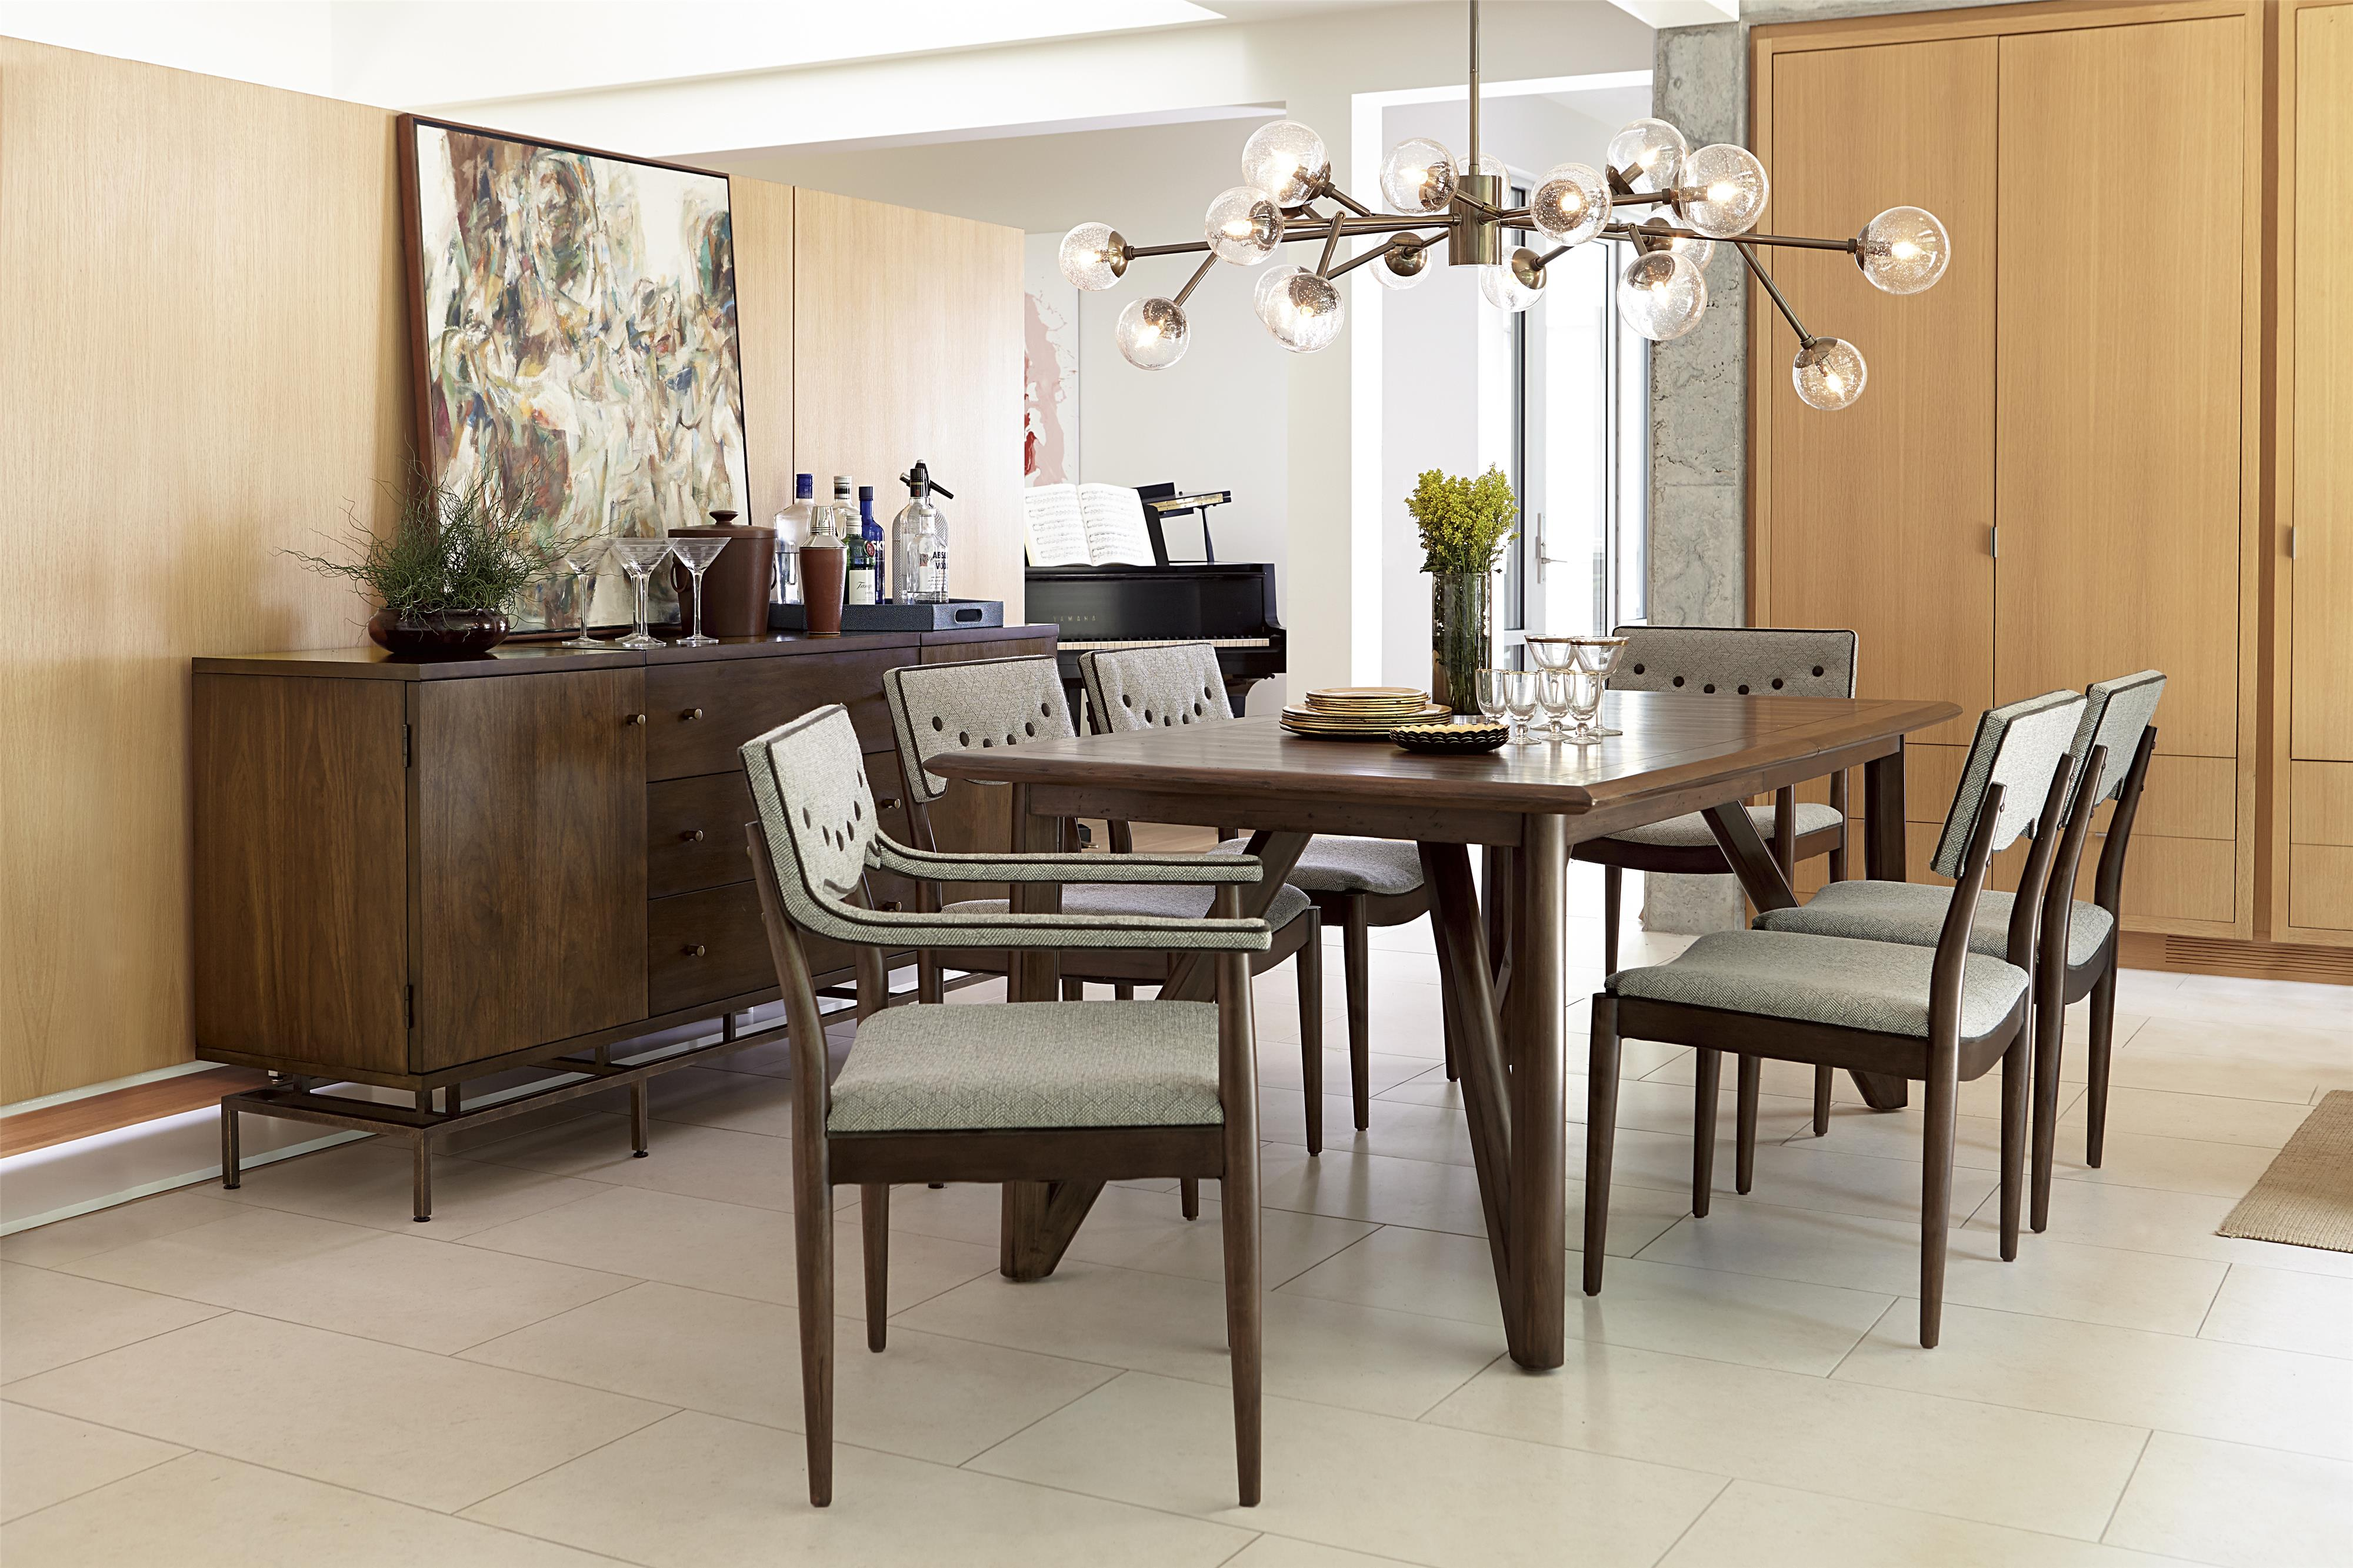 Belfort Signature Urban Treasures Formal Dining Room Group - Item Number: 223000-1812 Dining Room Group 3